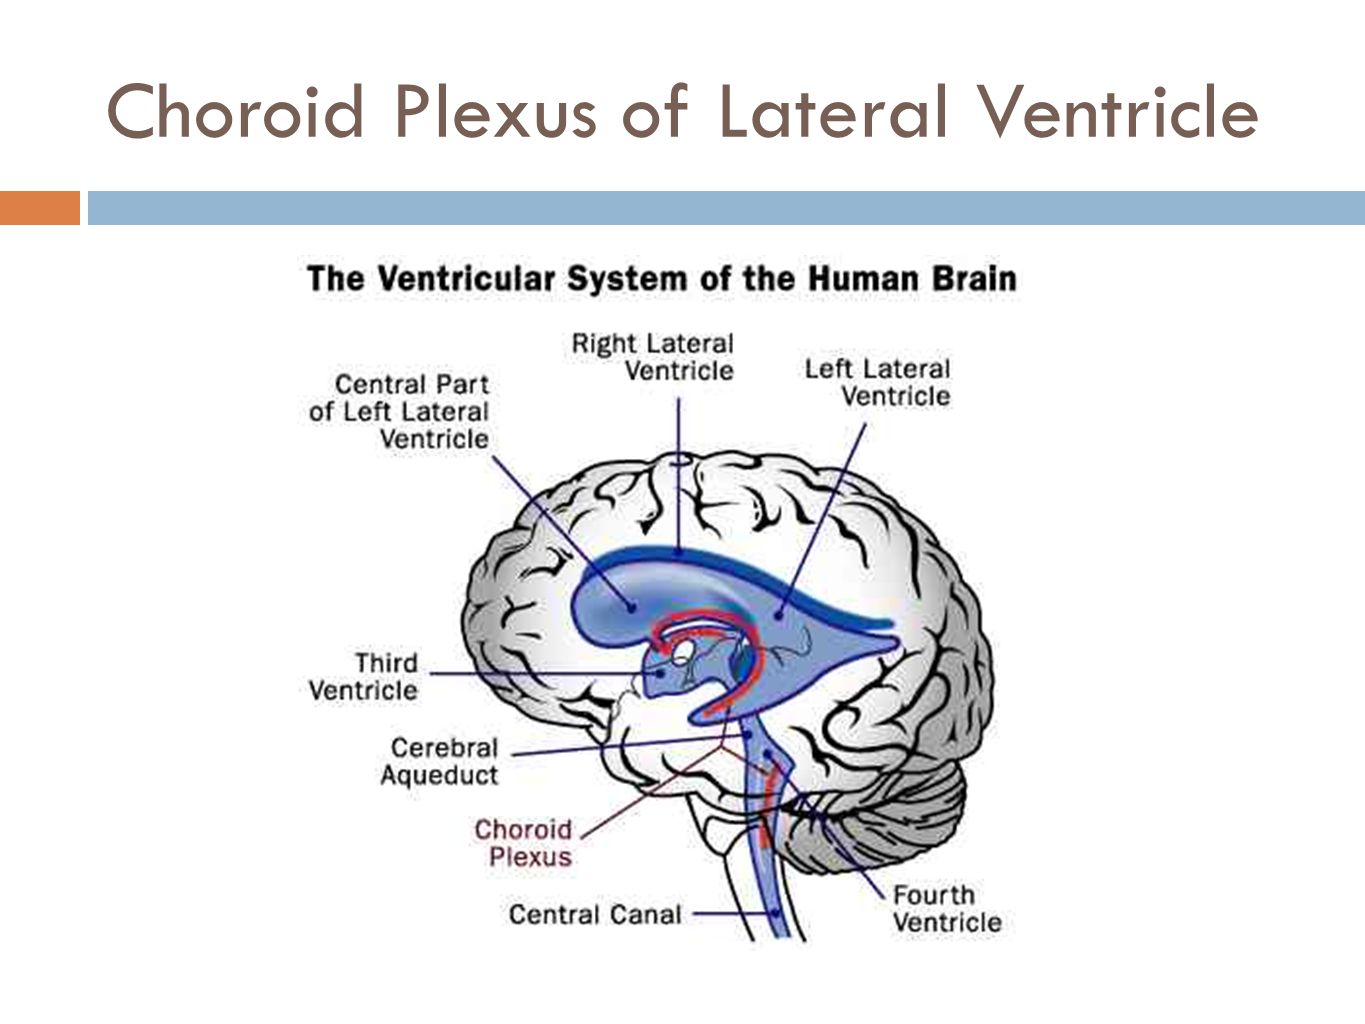 Choroid Plexus of Lateral Ventricle